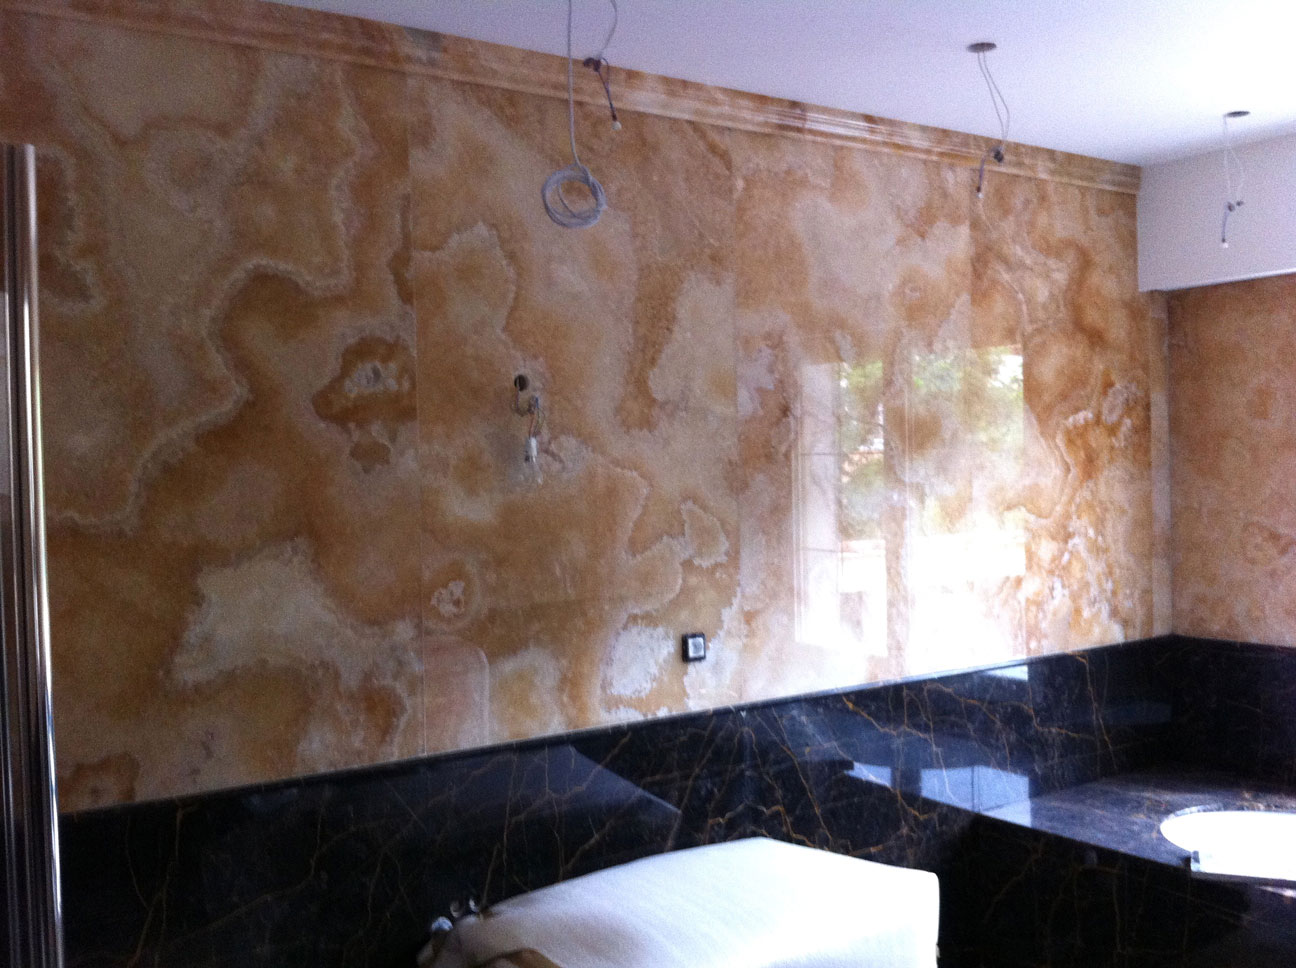 Bathroom in Gold Onyx and Port St Laurent Marble4